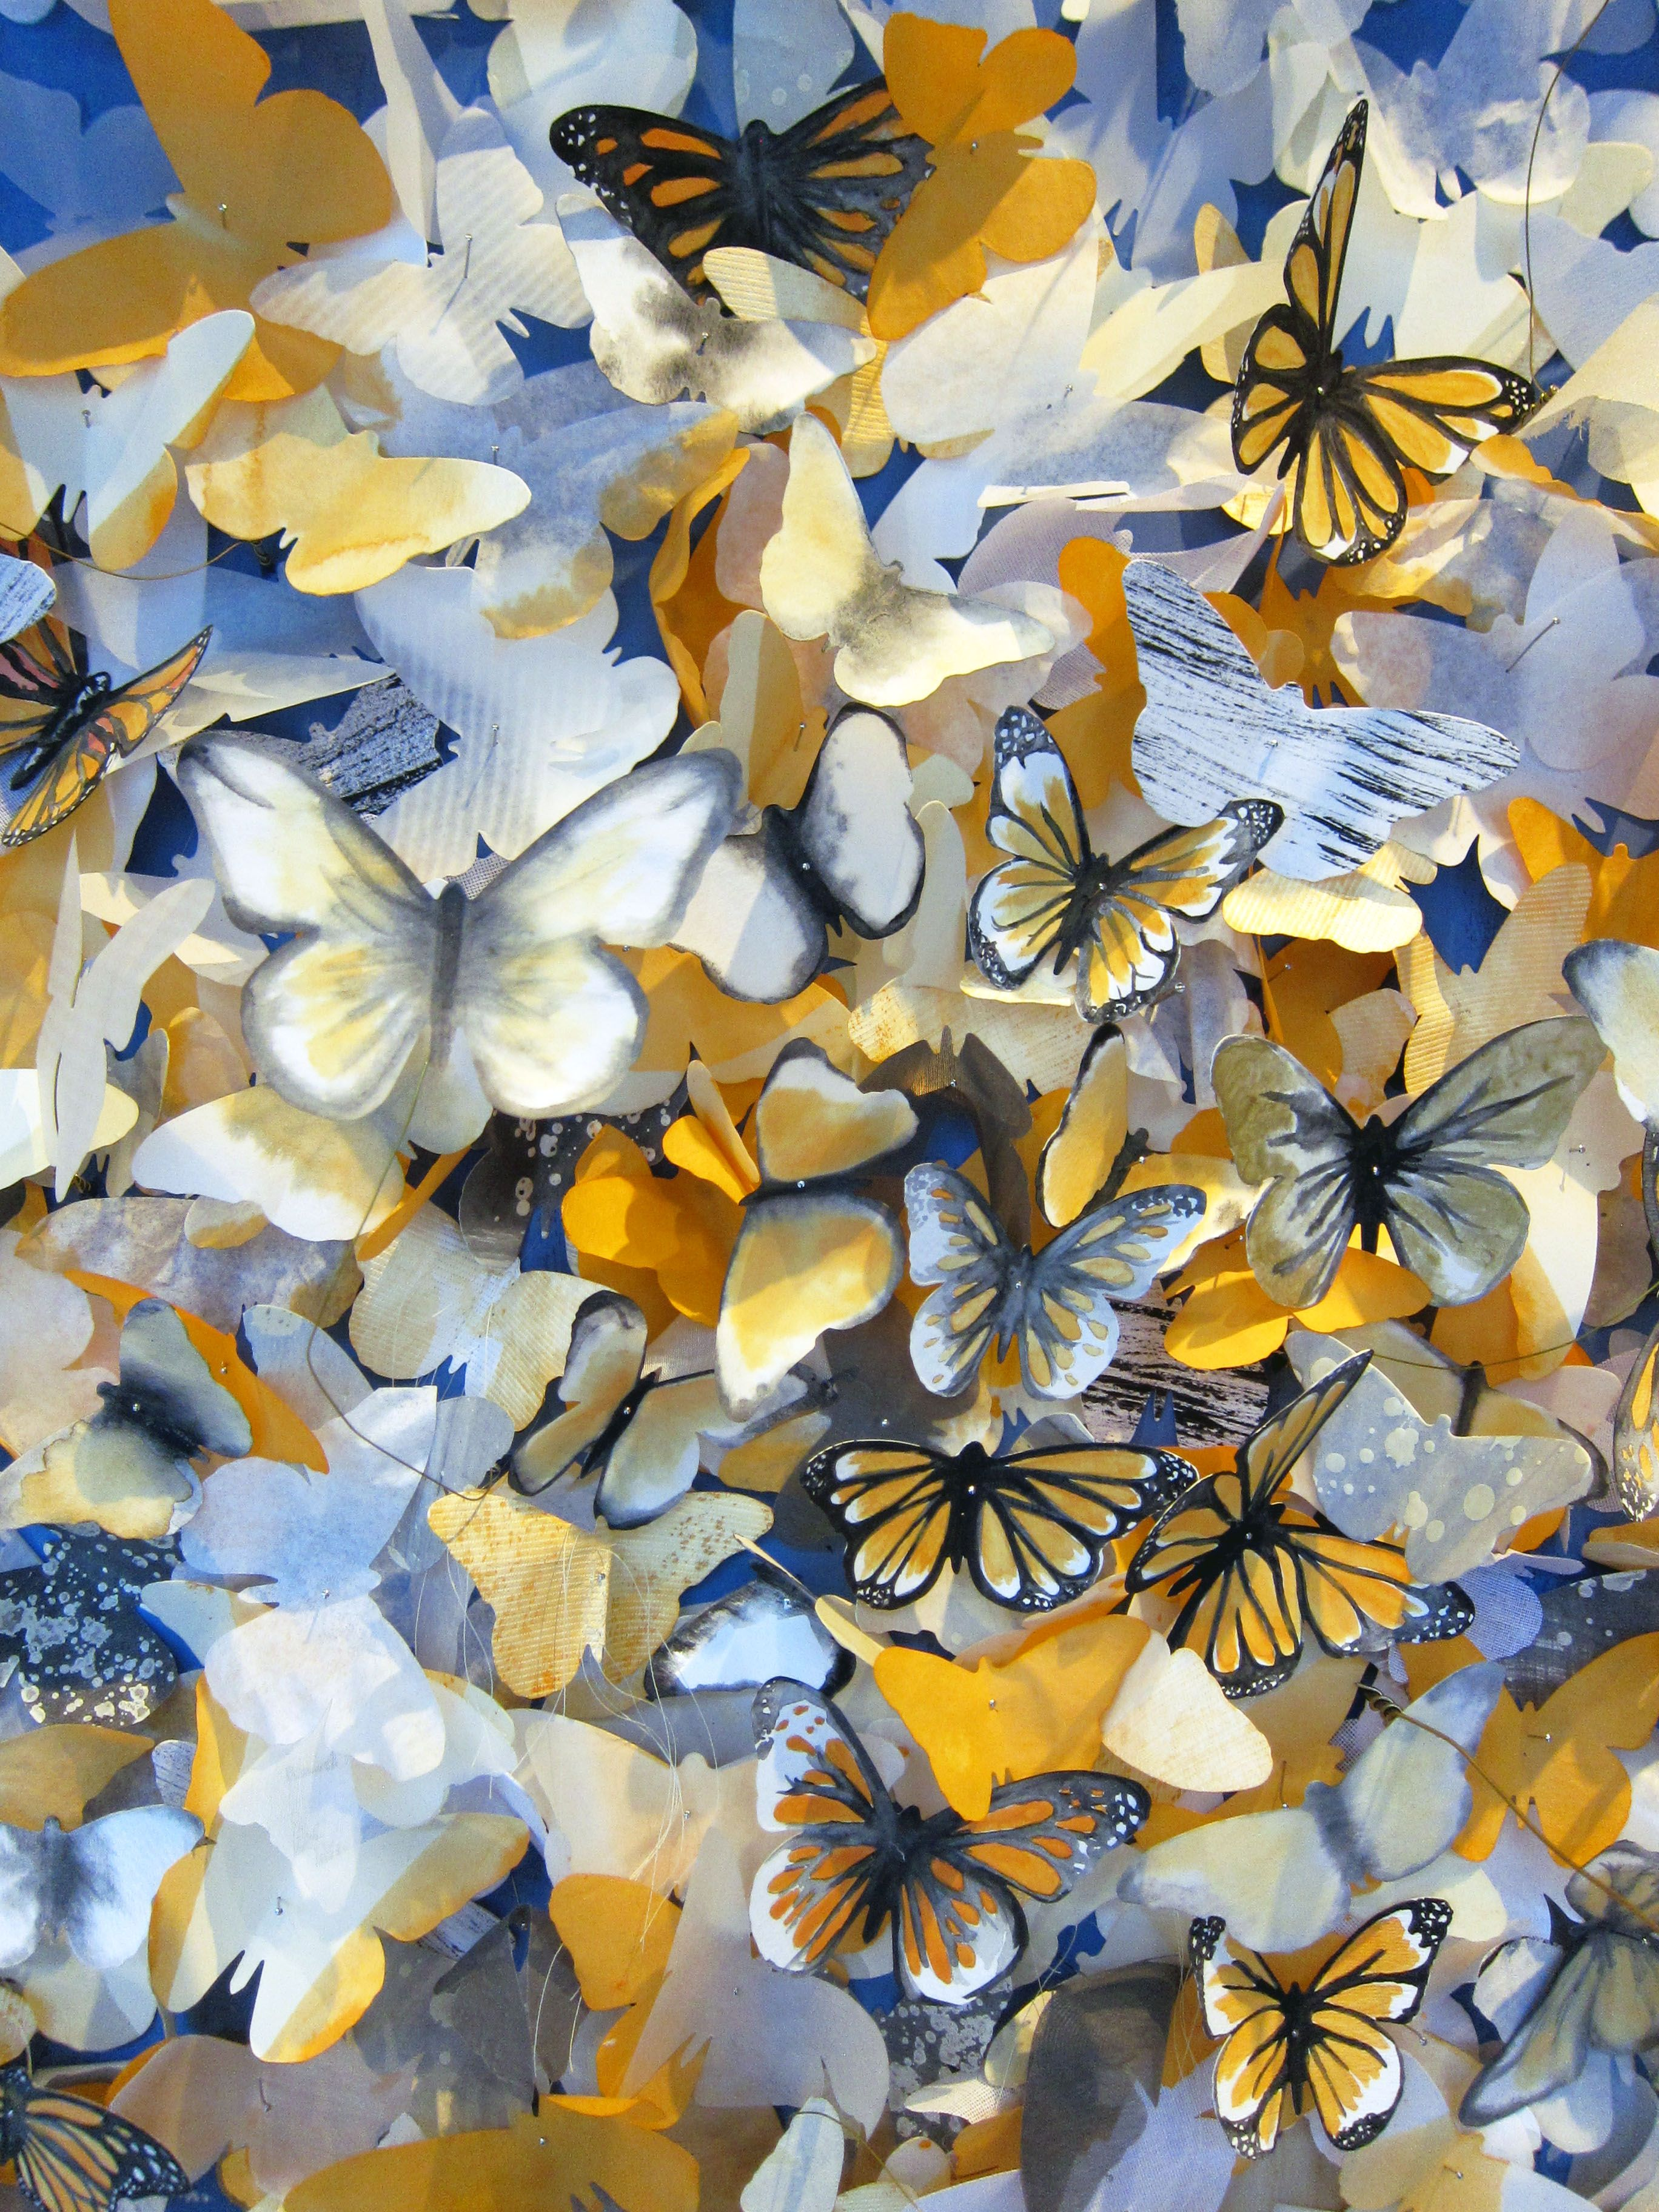 Color printing austin - Monique Badeanzug Mit Muschelkante Butterfly Printmonarch Butterflyearth Dayanthropologie Austininsectswindowpatternpaintingcolor